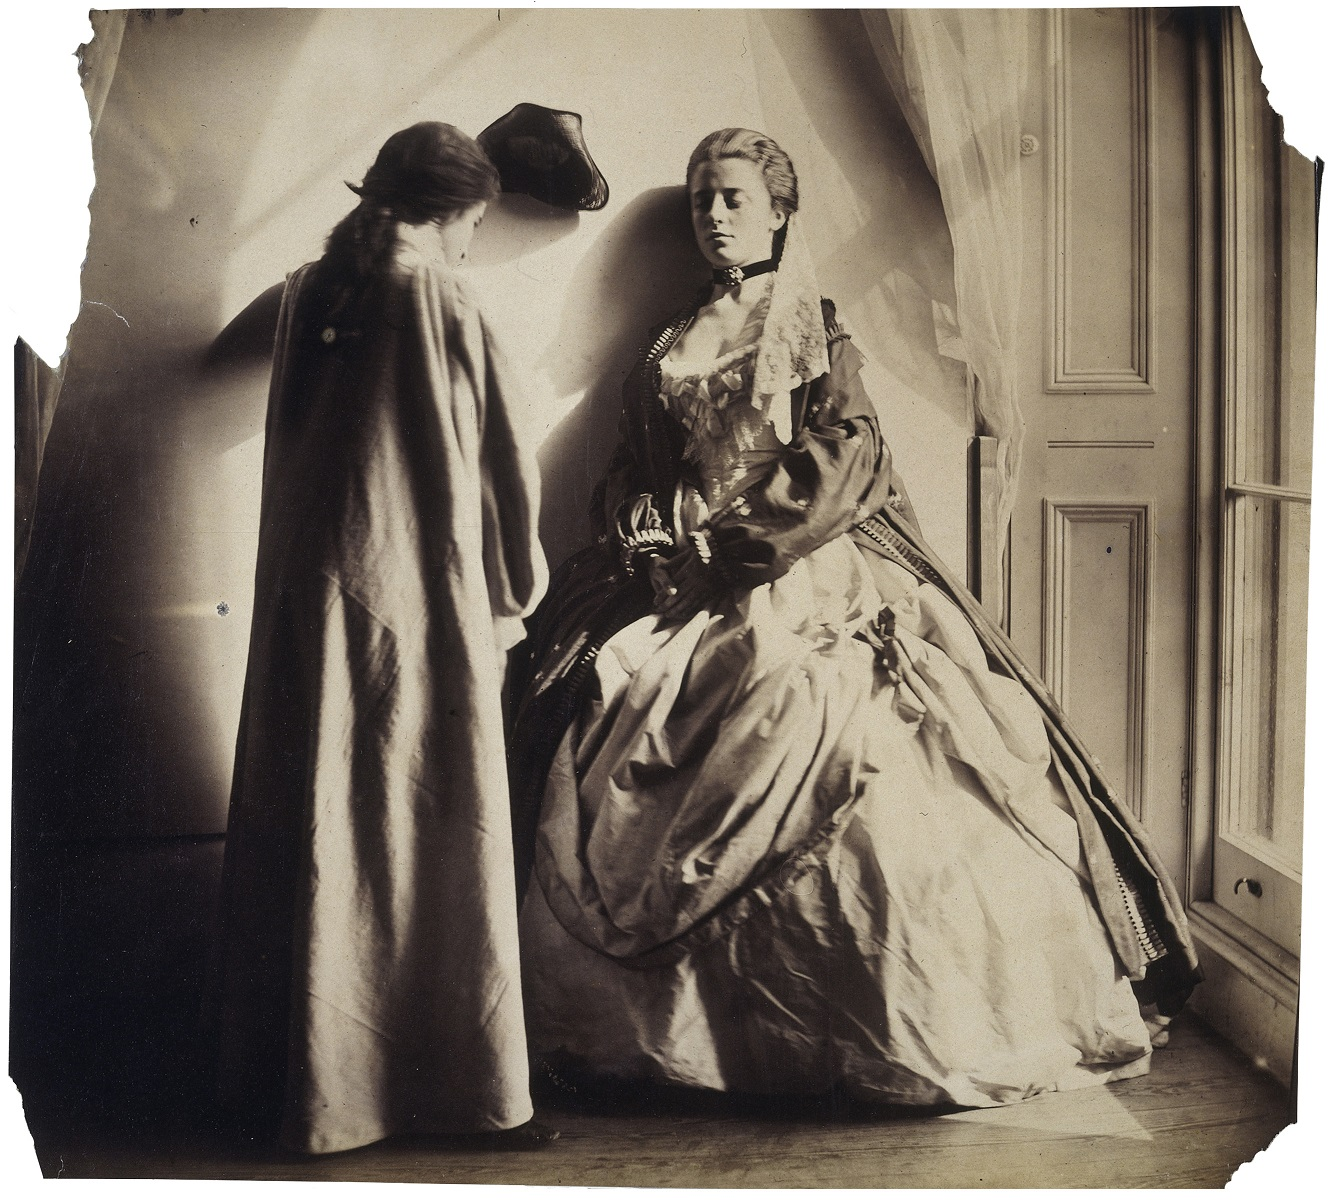 Photographic Study (Clementina and Isabella Grace Maude) by Clementina Hawarden, 1863-4